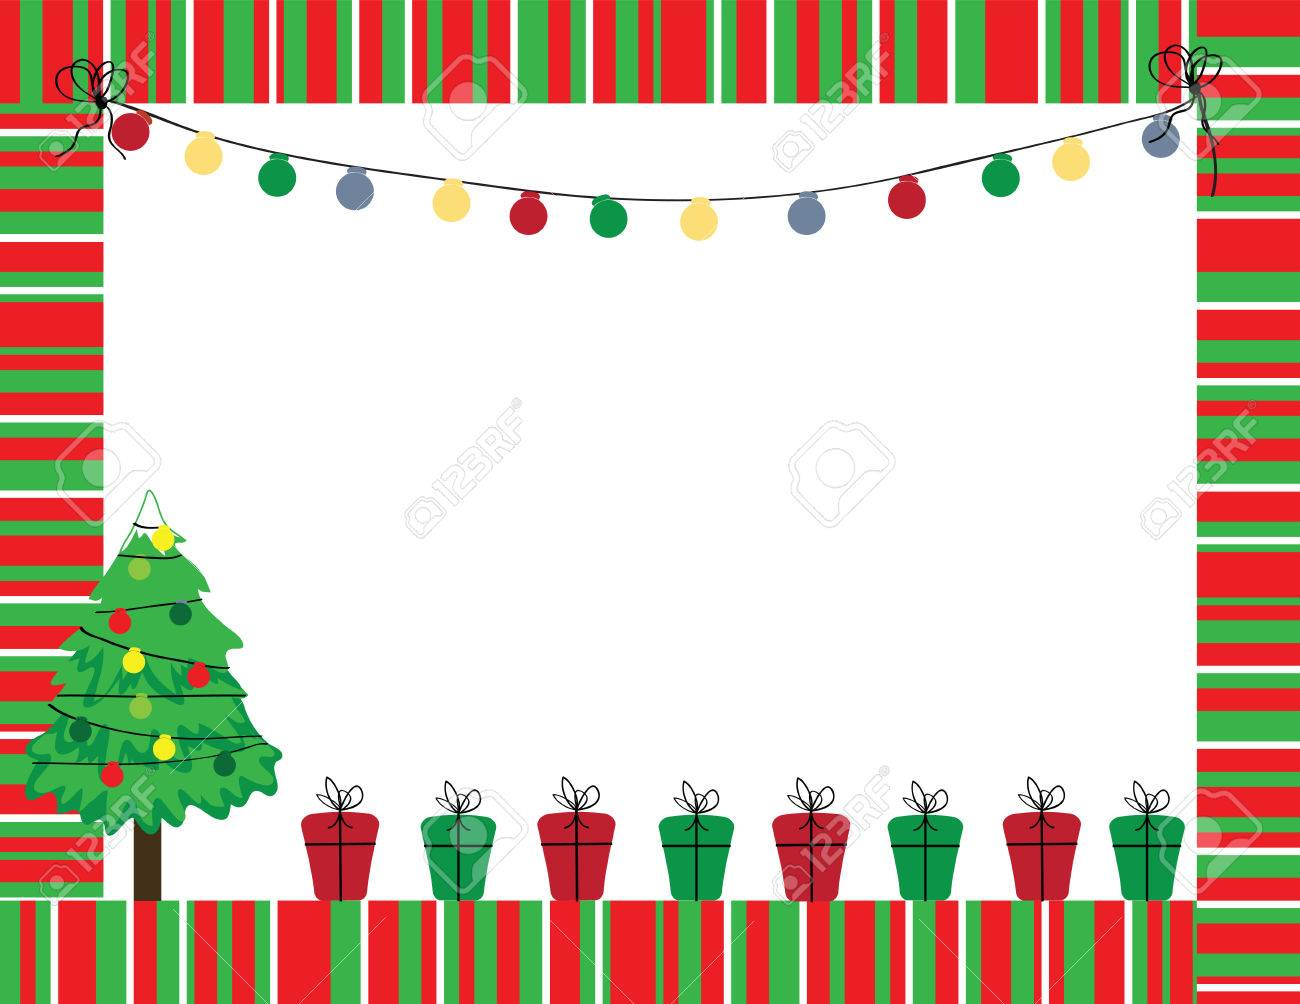 Cute Christmas frame in red and green color.